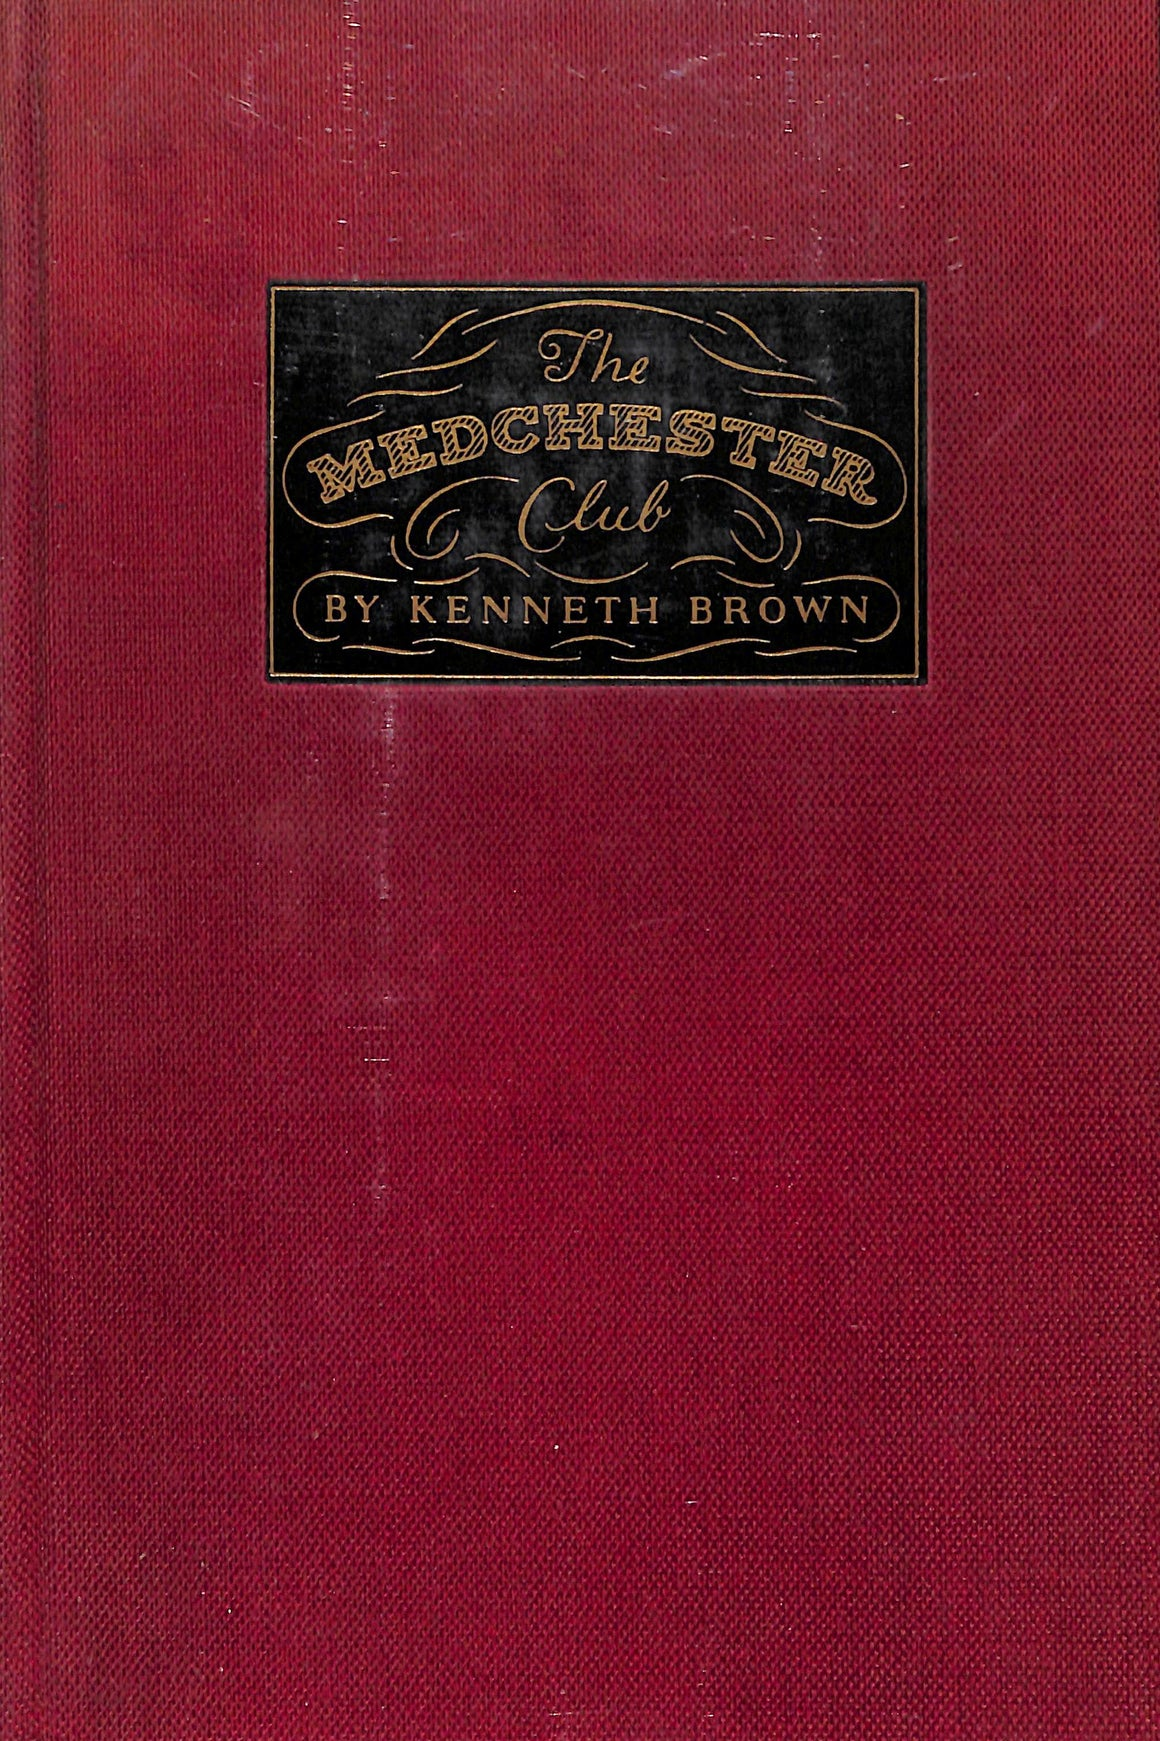 The Medchester Club